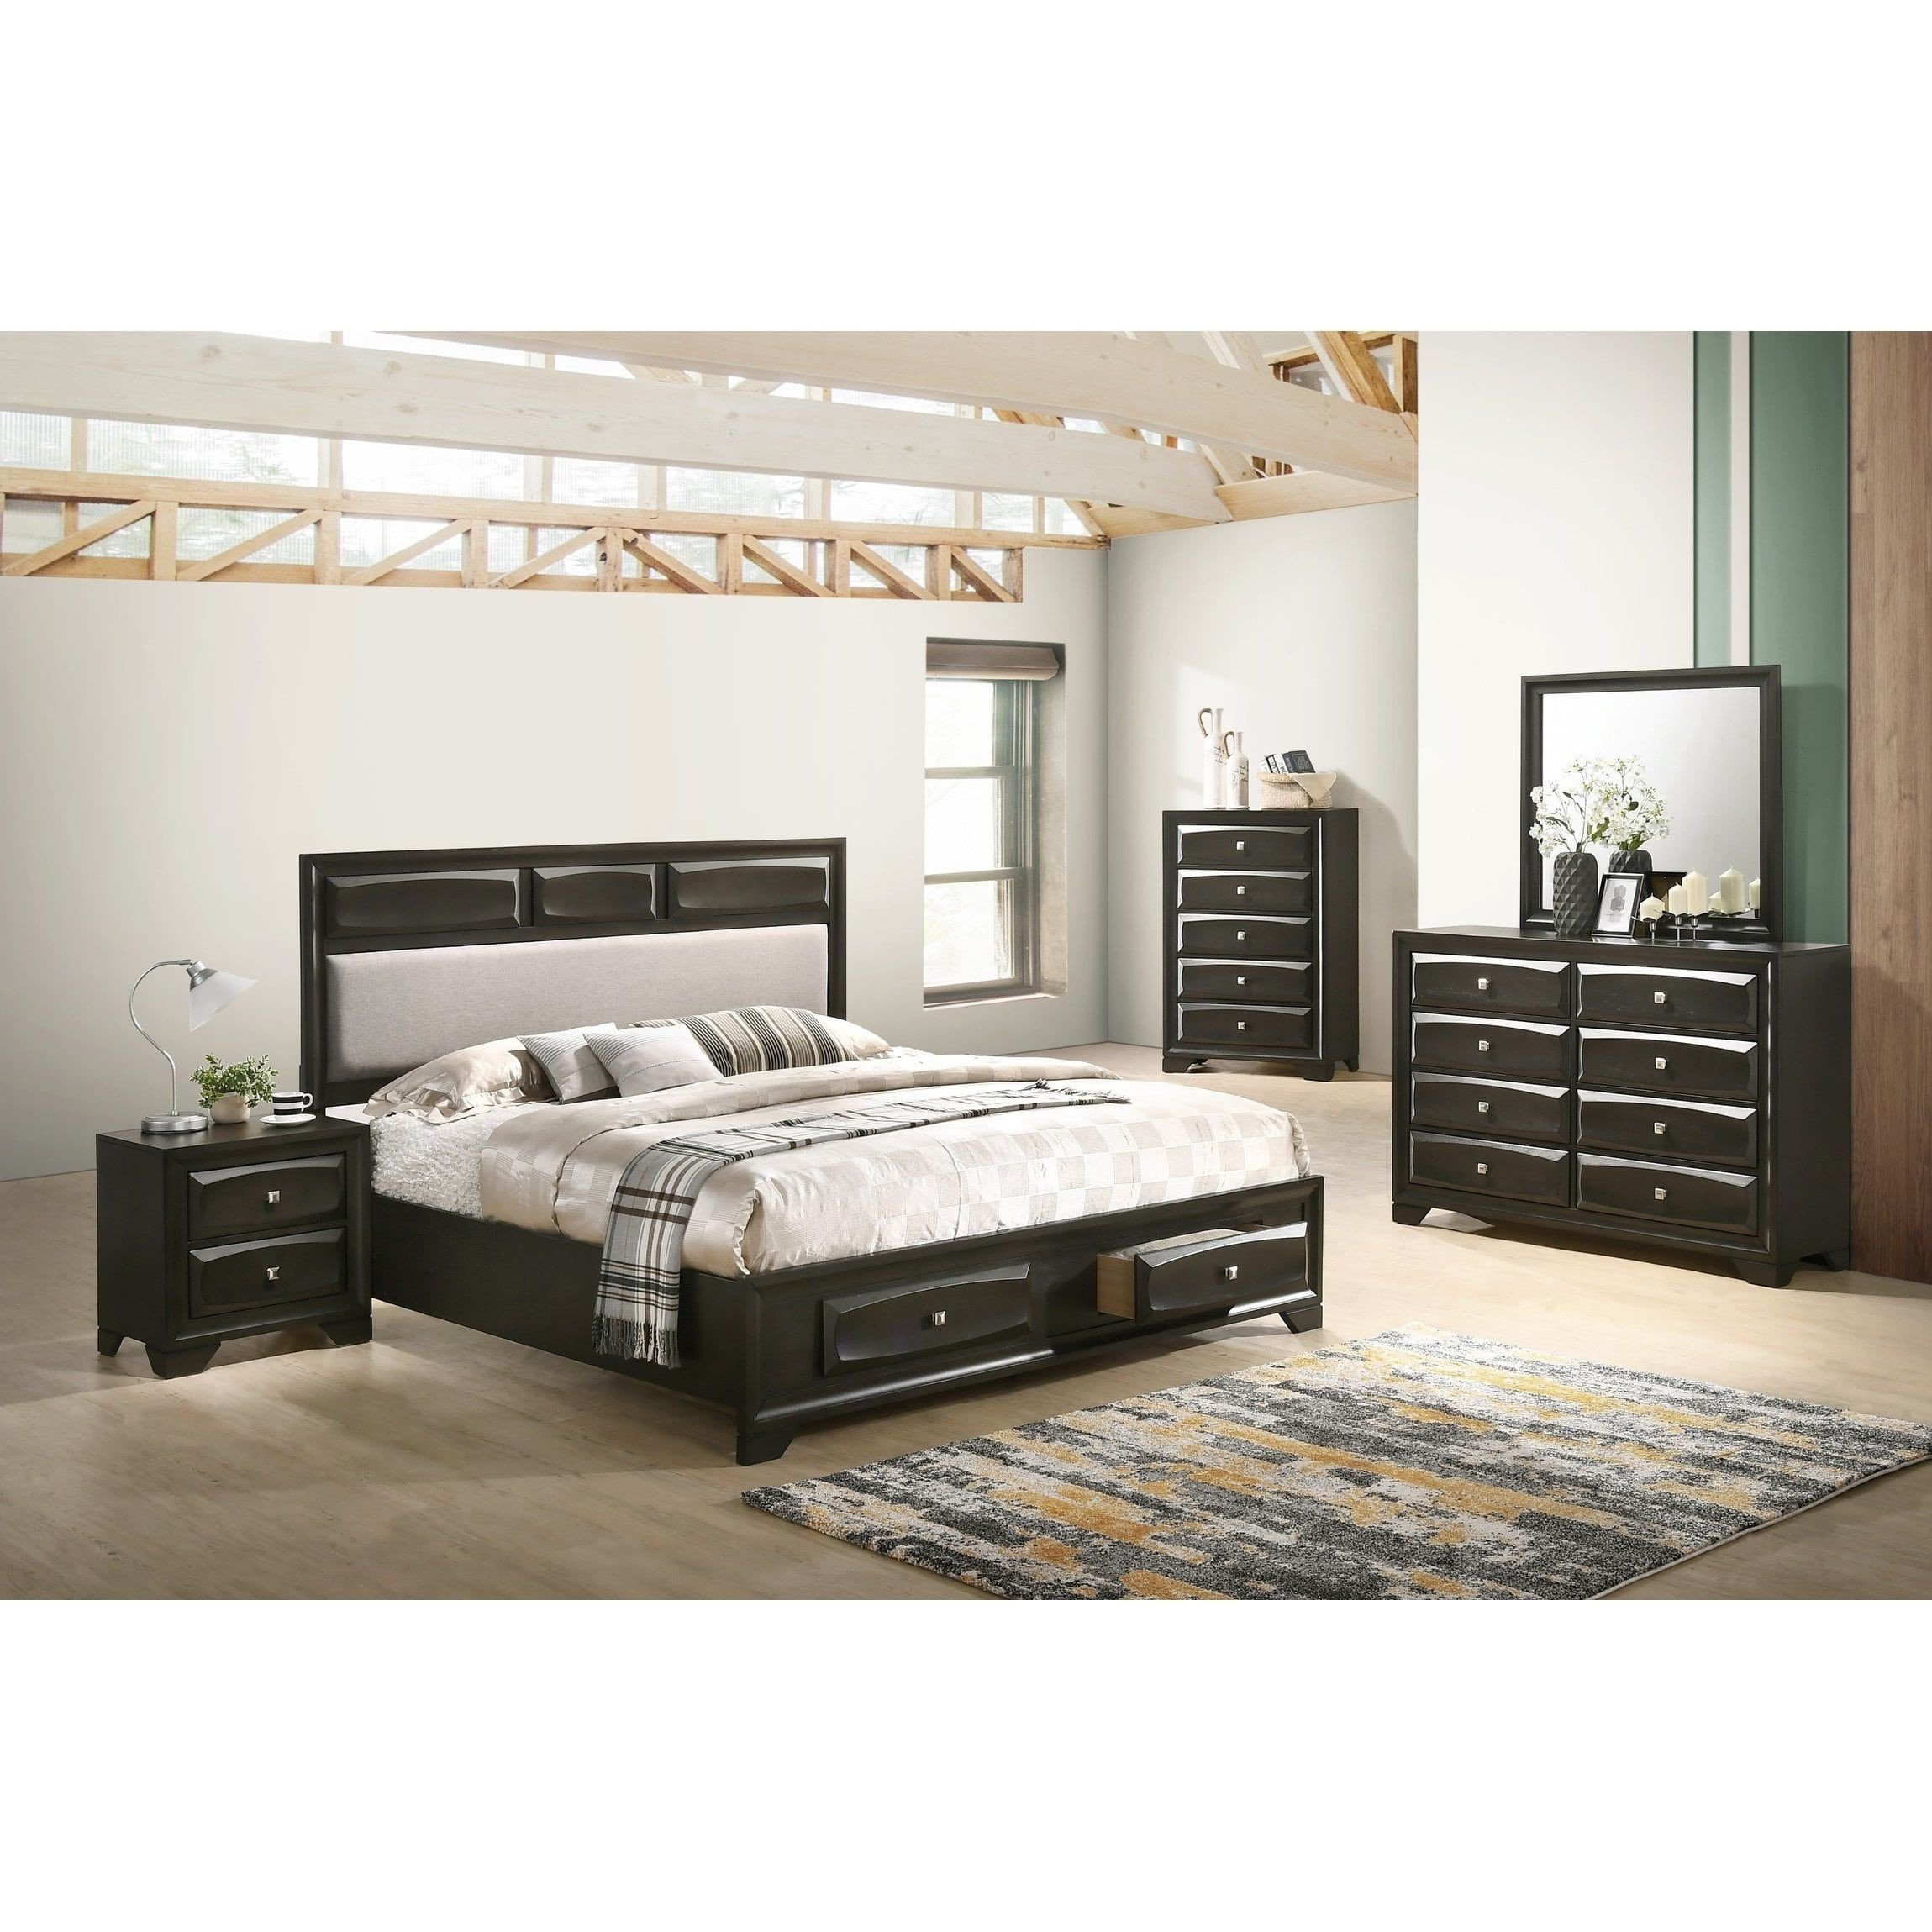 Full Size Bedroom Furniture Best Of Oakland Antique Gray Finish Wood 5 Pc King Size Bedroom Set